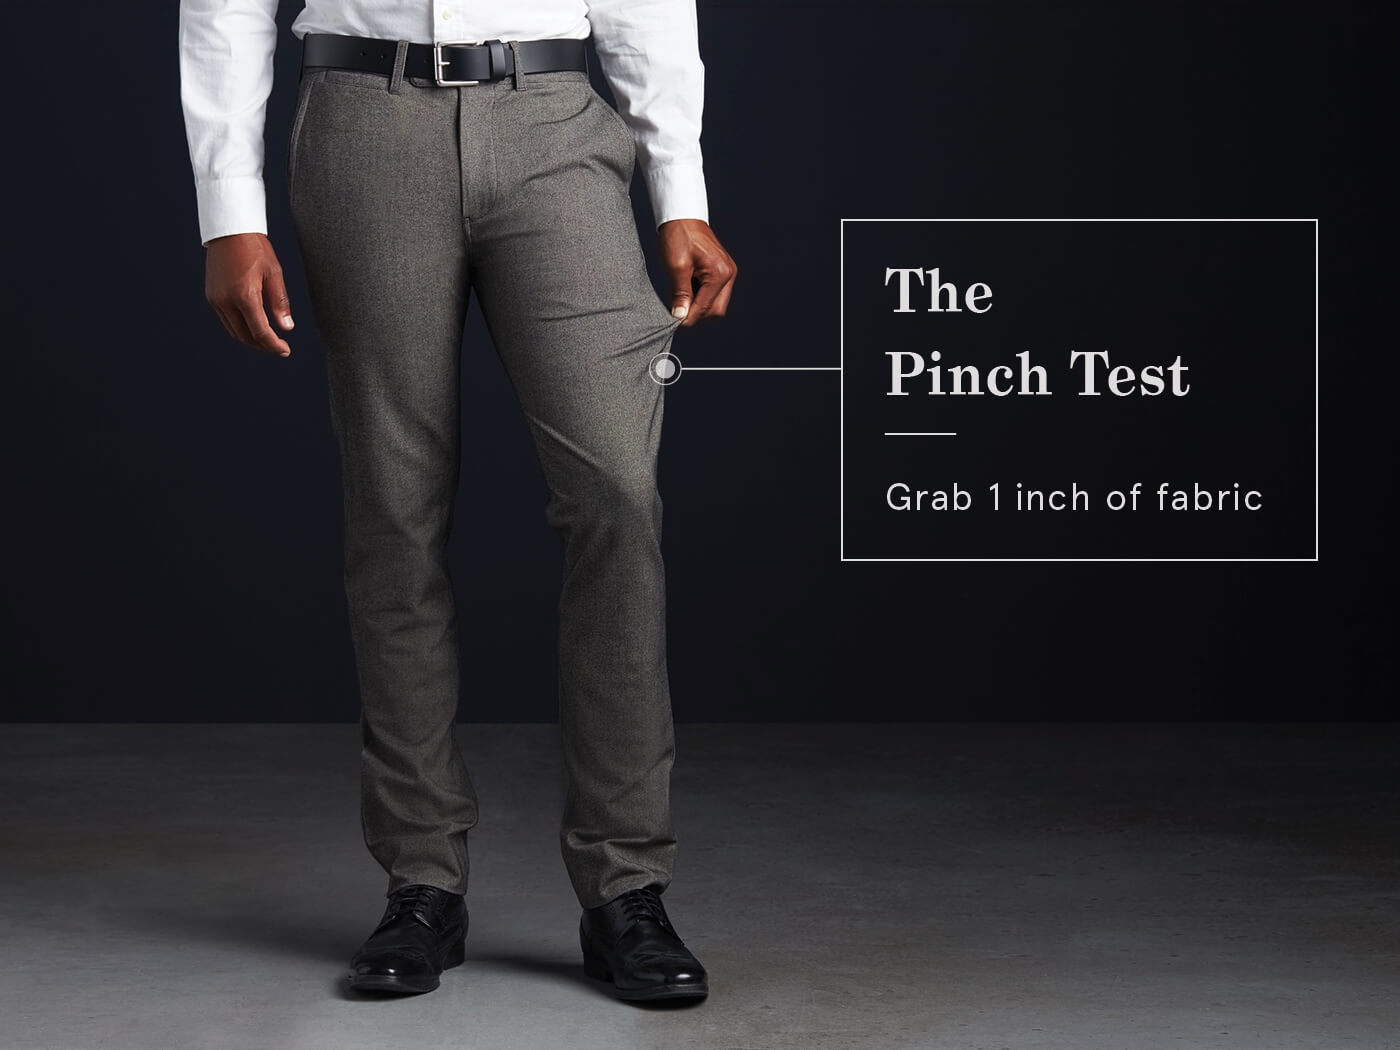 how to know if dress pants fit - do the pinch test, you should grab 1 inch of fabric